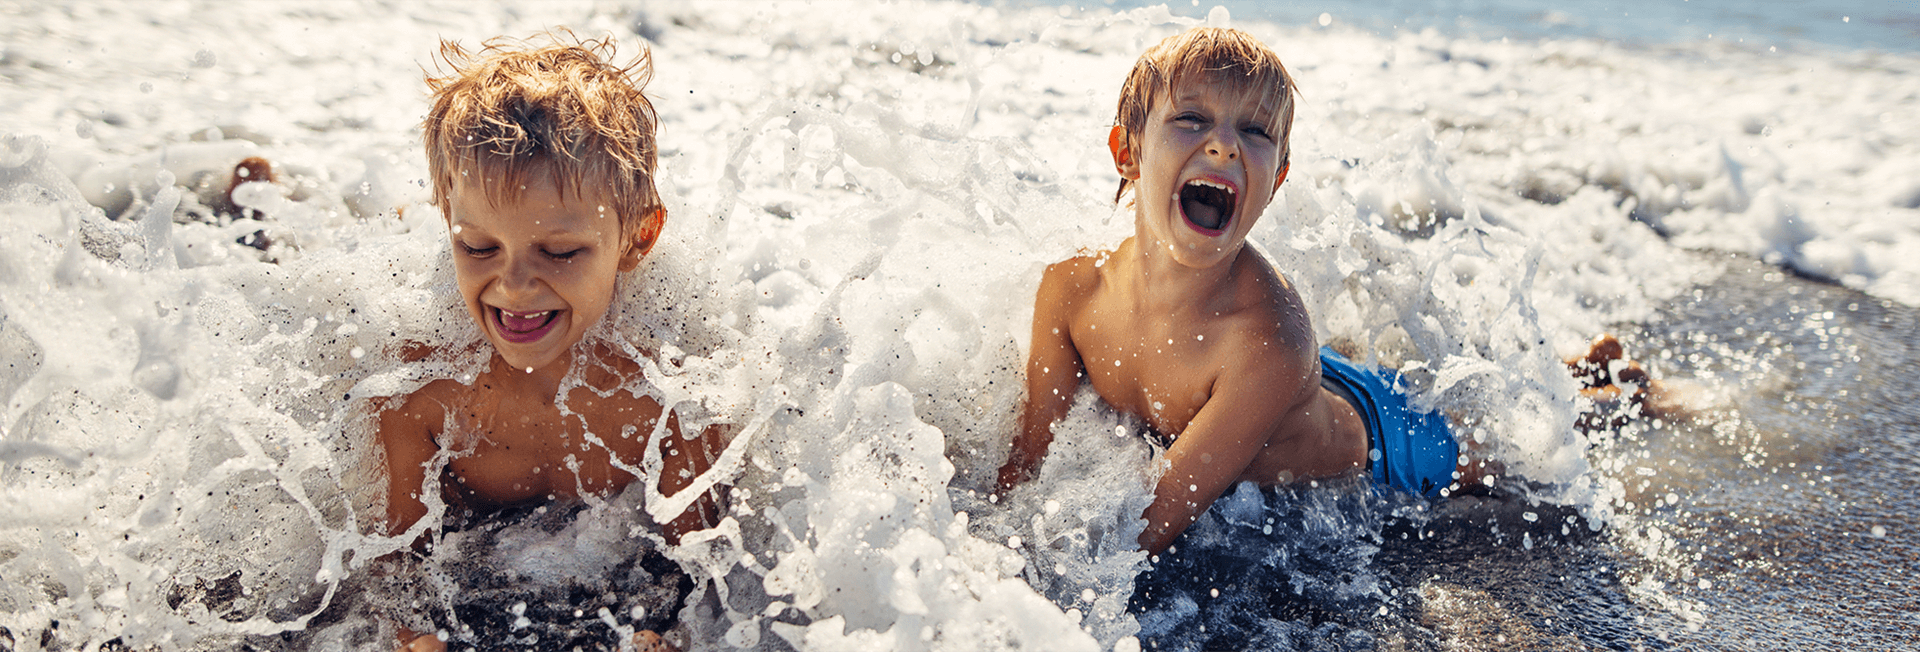 Kids playing in the ocean